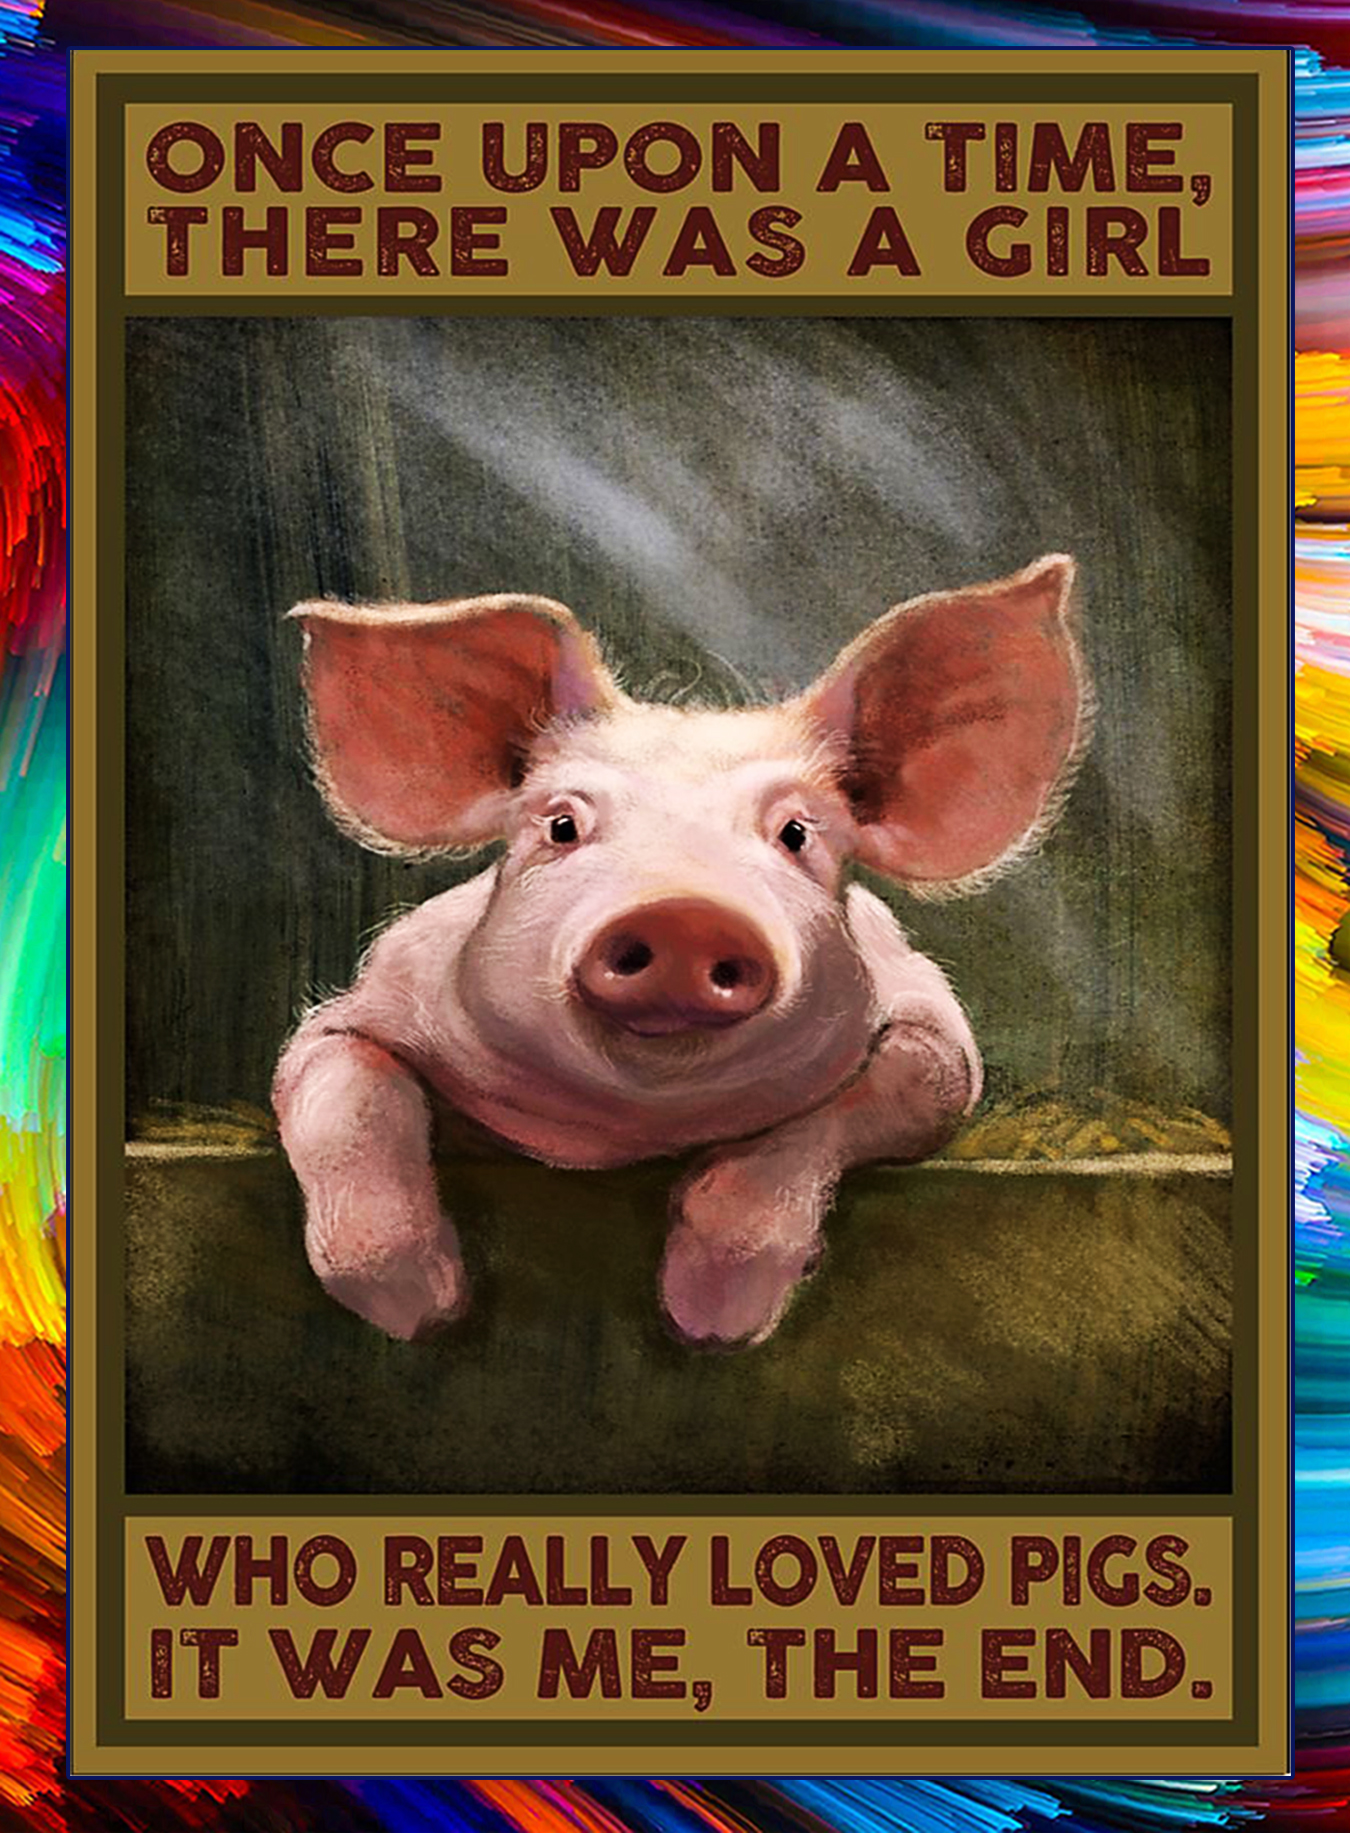 Once upon a time there was a girl who really loved pigs poster - A3